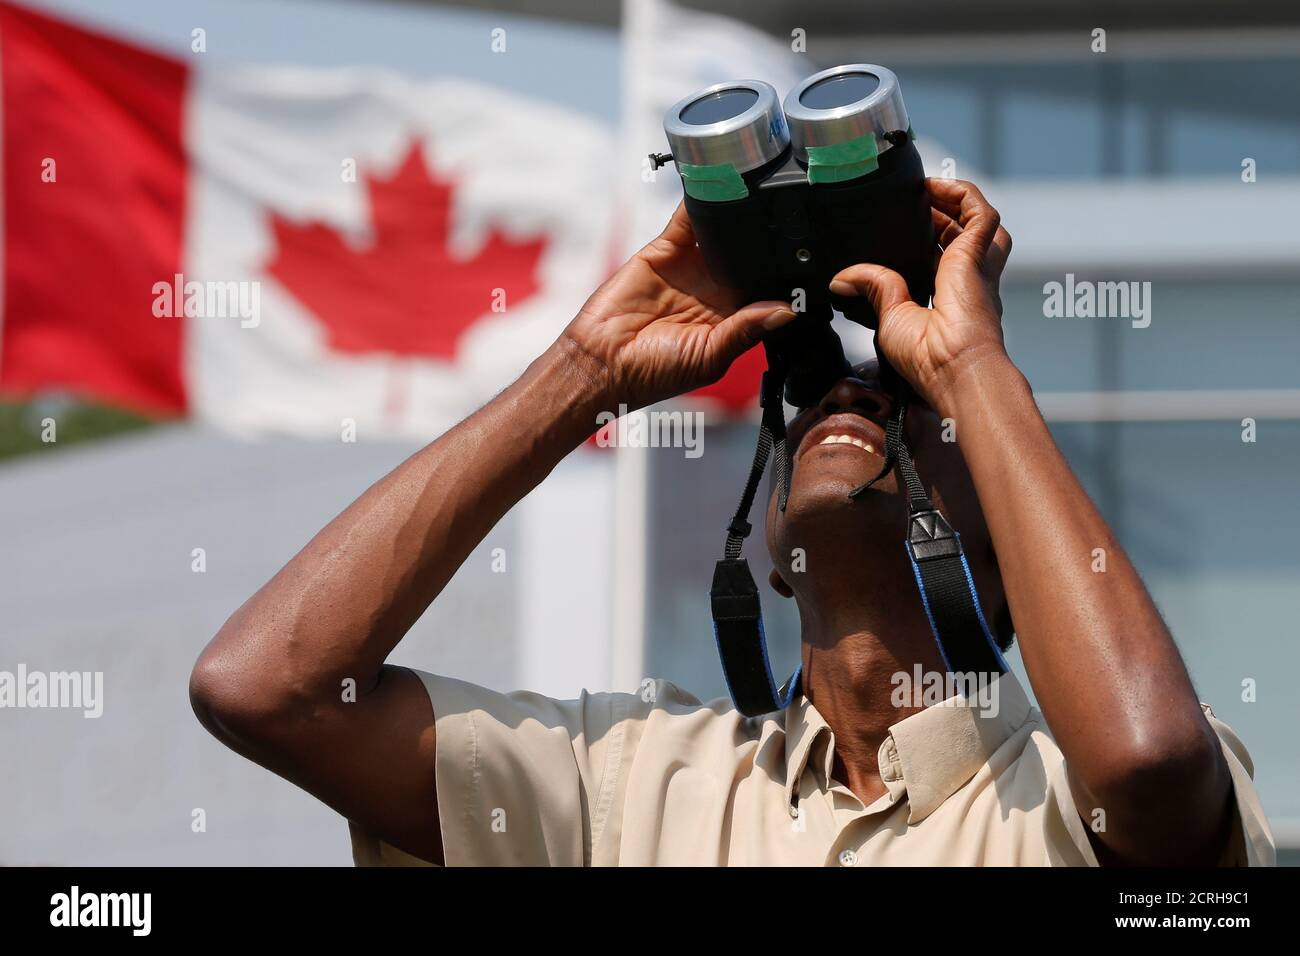 A man uses binoculars to watch a partial solar eclipse at the Canada Aviation and Space Museum in Ottawa, Ontario, Canada, August 21, 2017. REUTERS/Chris Wattie Stock Photo